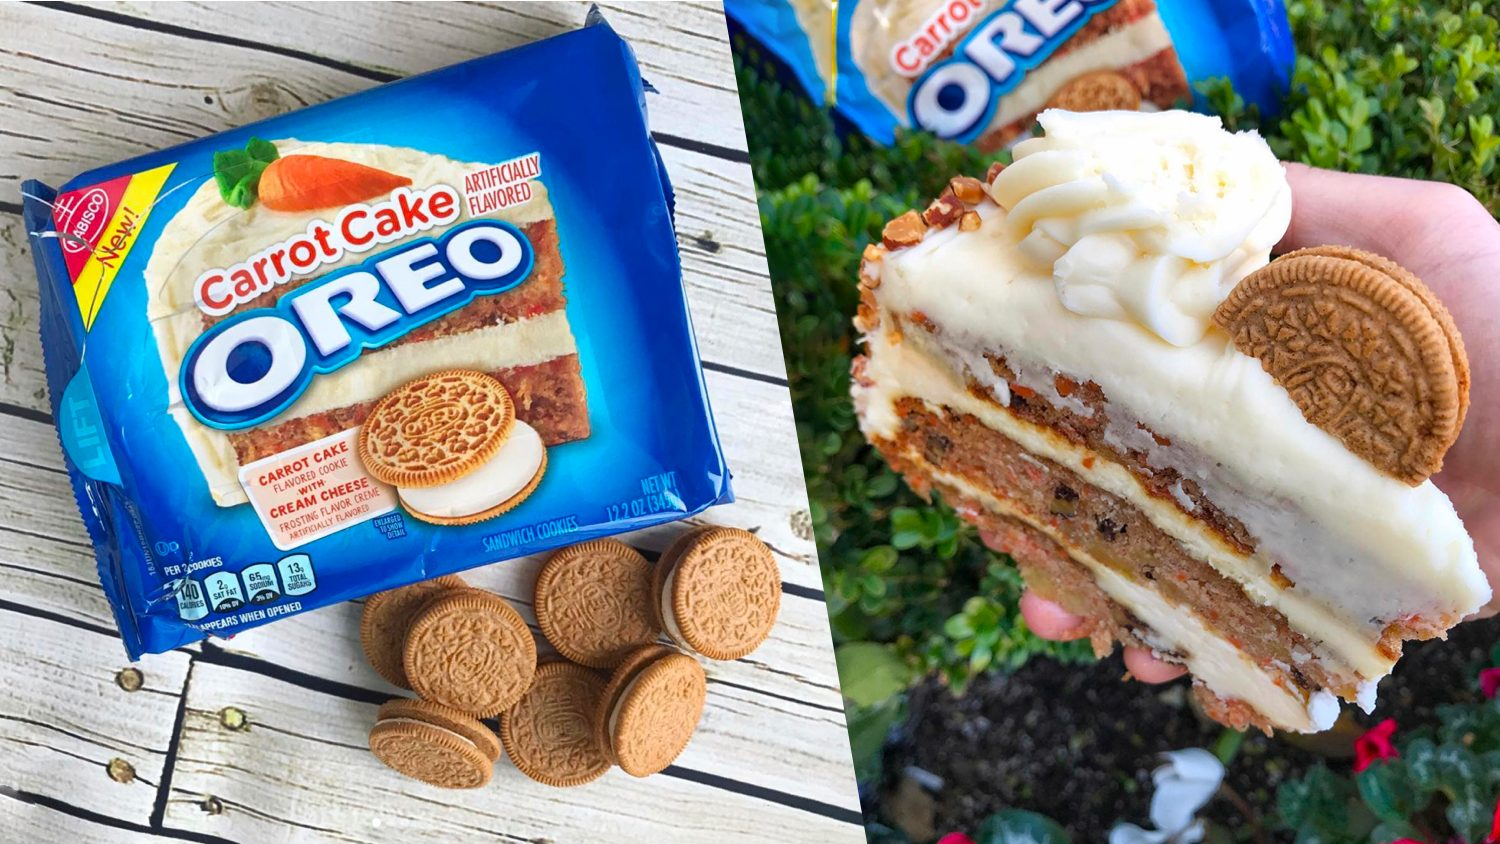 New Carrot Cake Oreos Are Stuffed With Dairy-Free Cheese